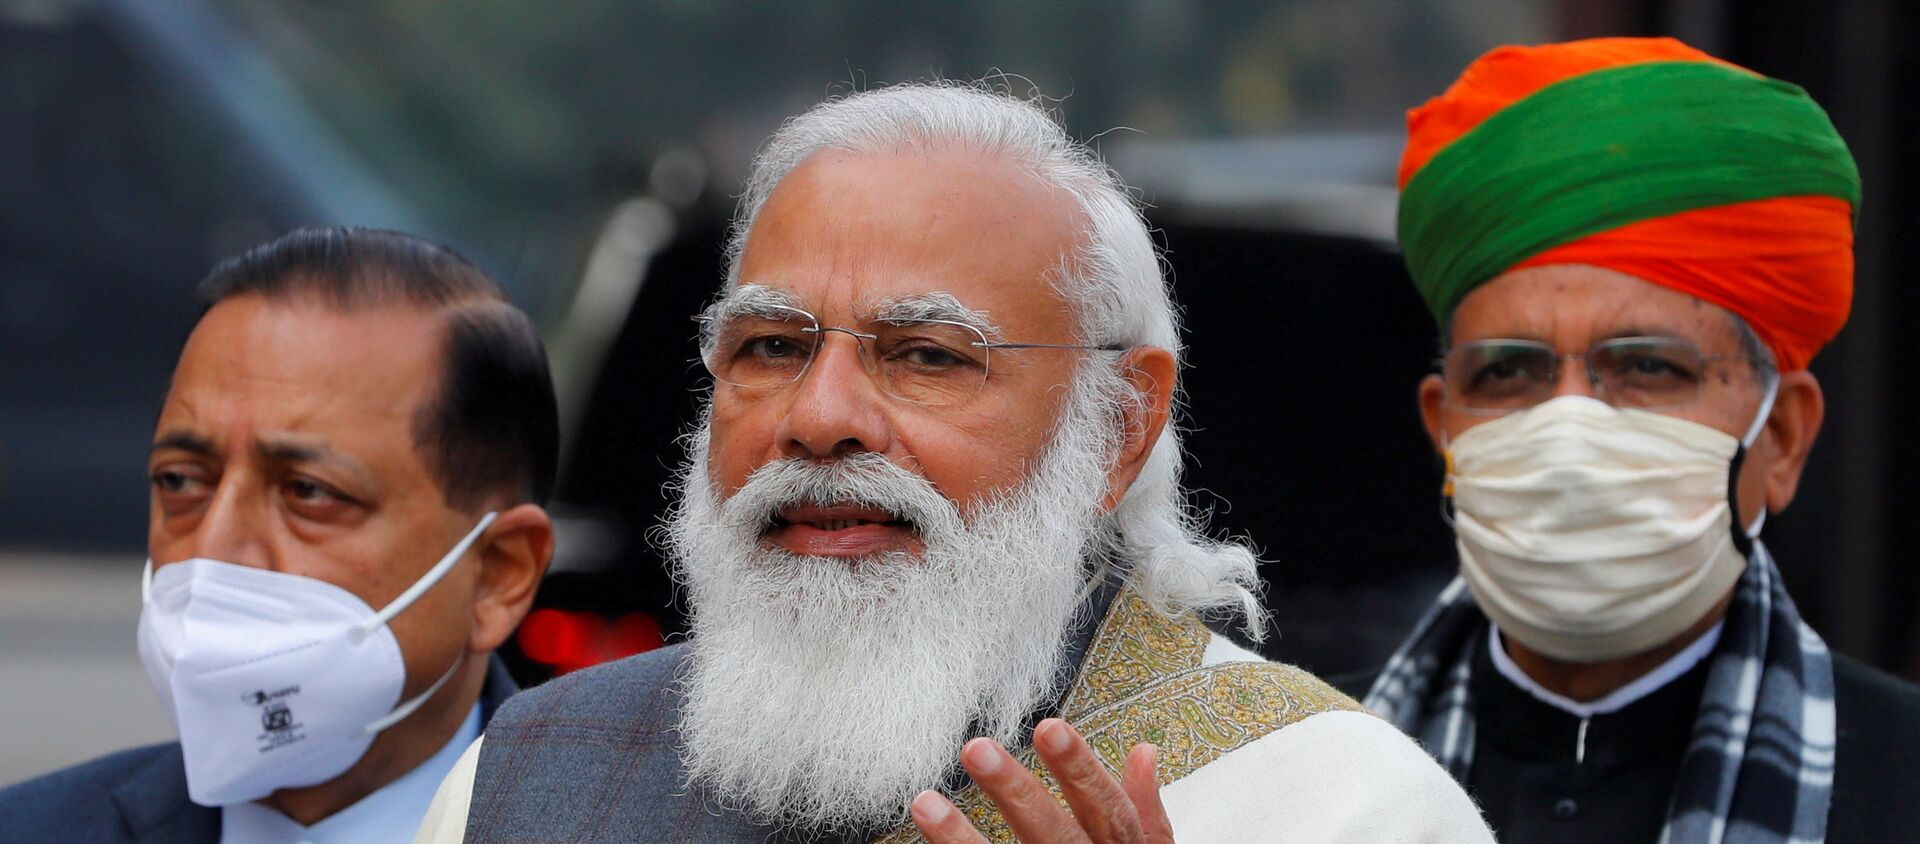 FILE PHOTO: India's Prime Minister Narendra Modi arrives at the parliament house to attend the first day of the budget session, in New Delhi - Sputnik International, 1920, 28.06.2021